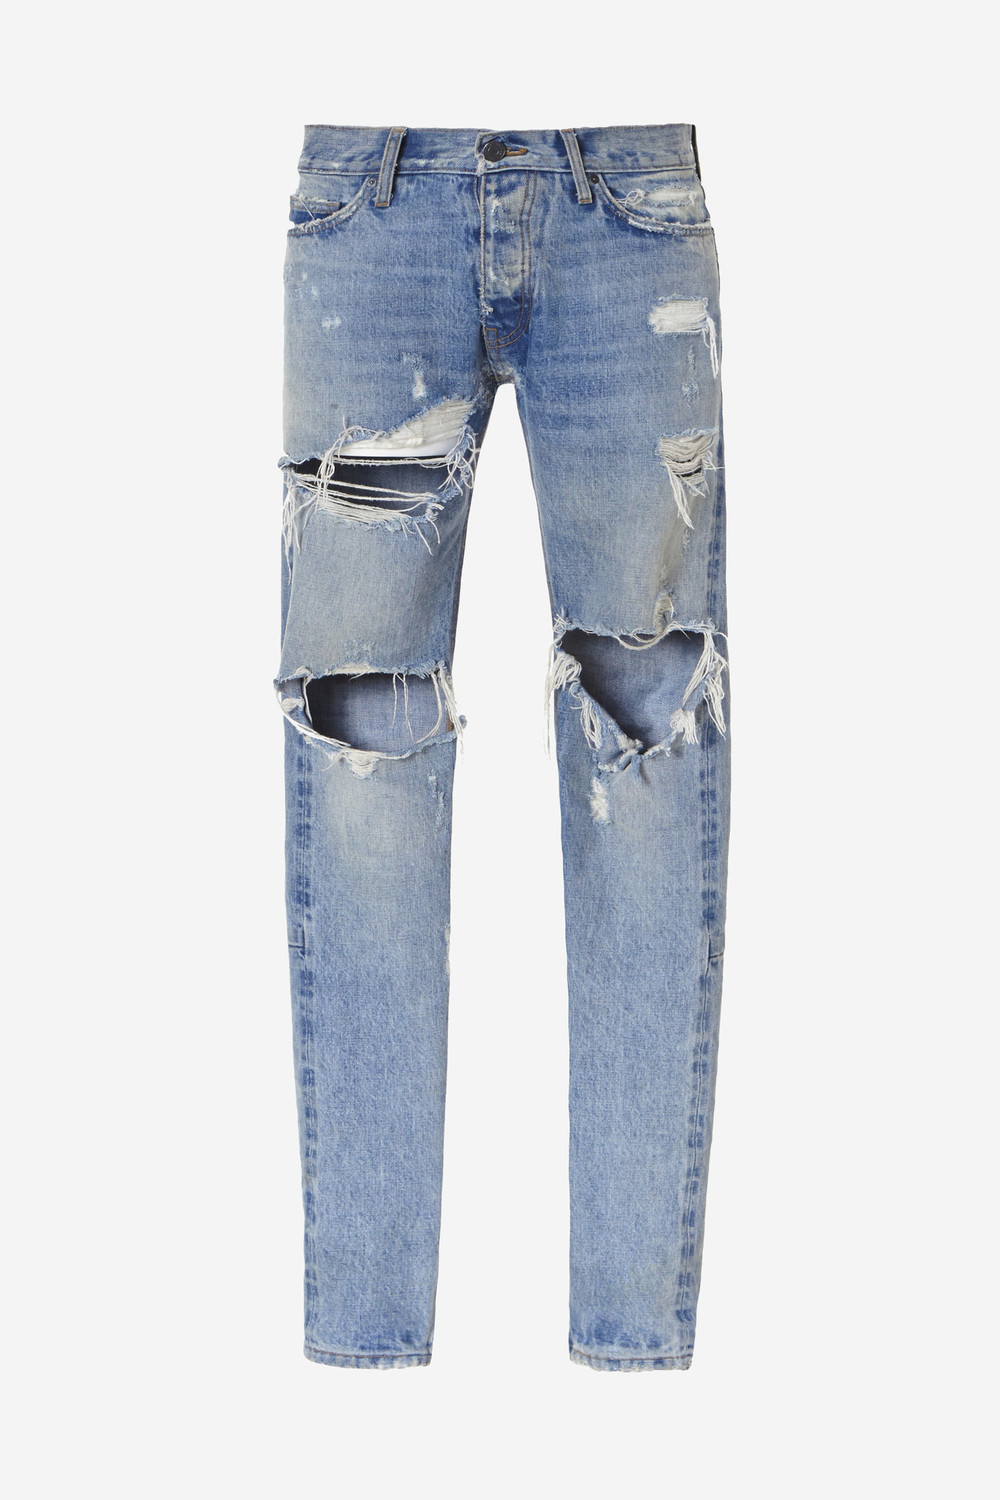 fear of god selvedge_denim_vintage_jean.jpg